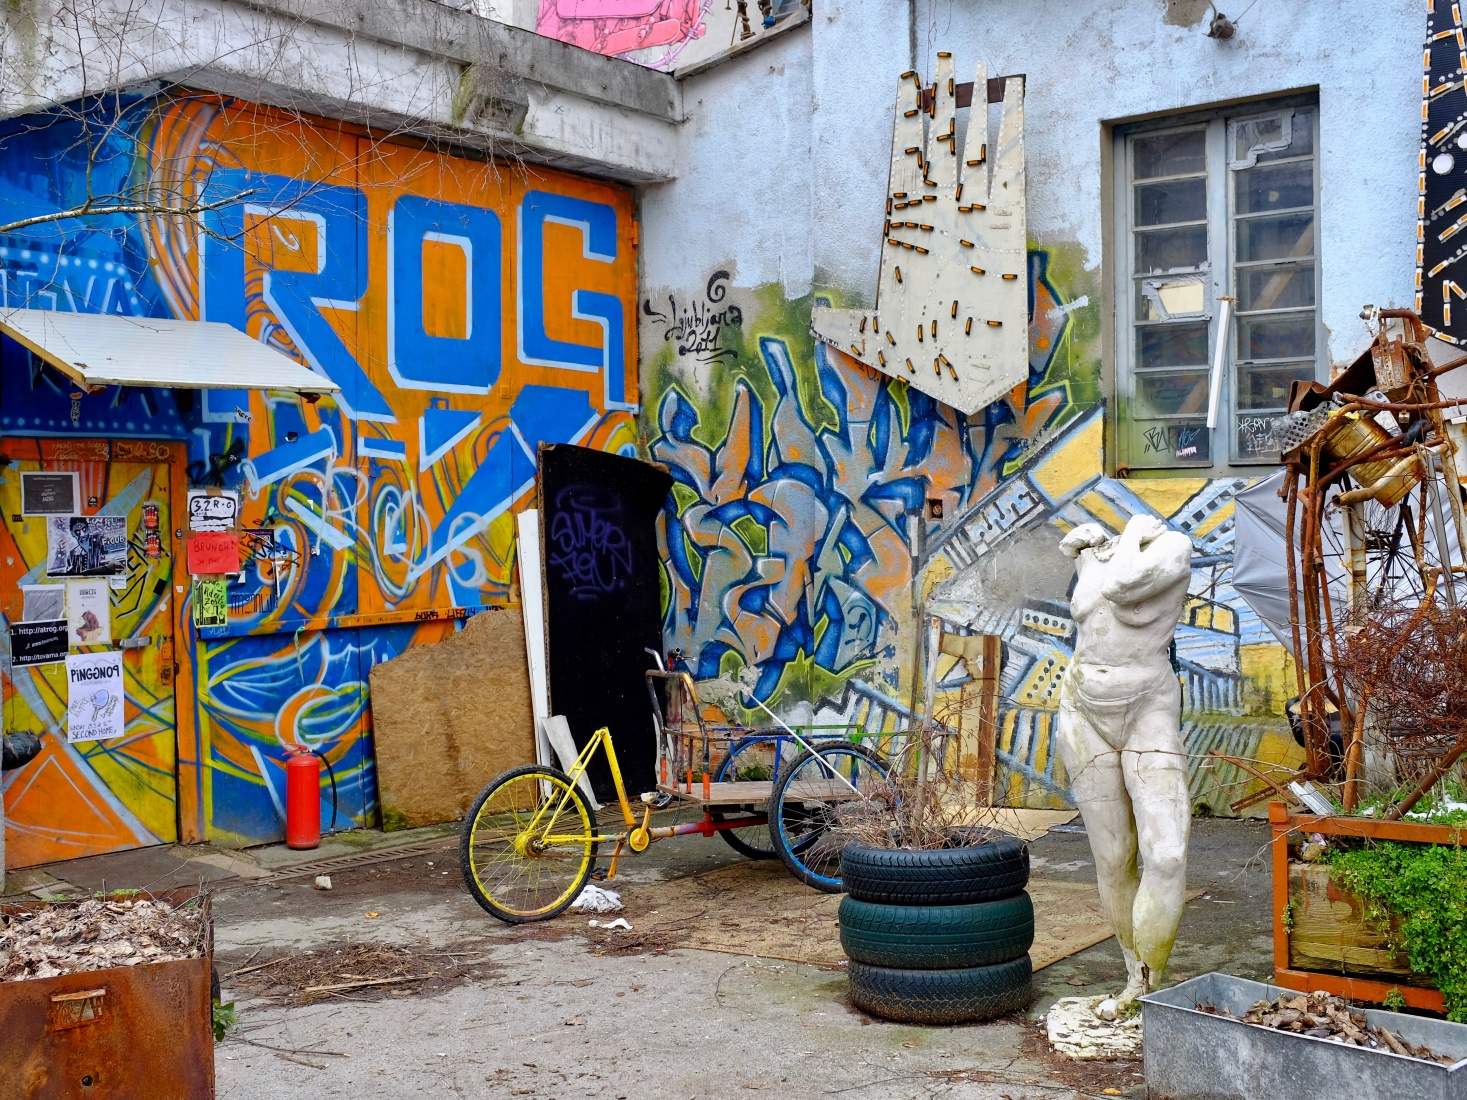 Graffiti covered walls, statue, and other street art at the Rog squat, former bicycle factory, near the Triple Bridge in Ljubljana, Slovenia.